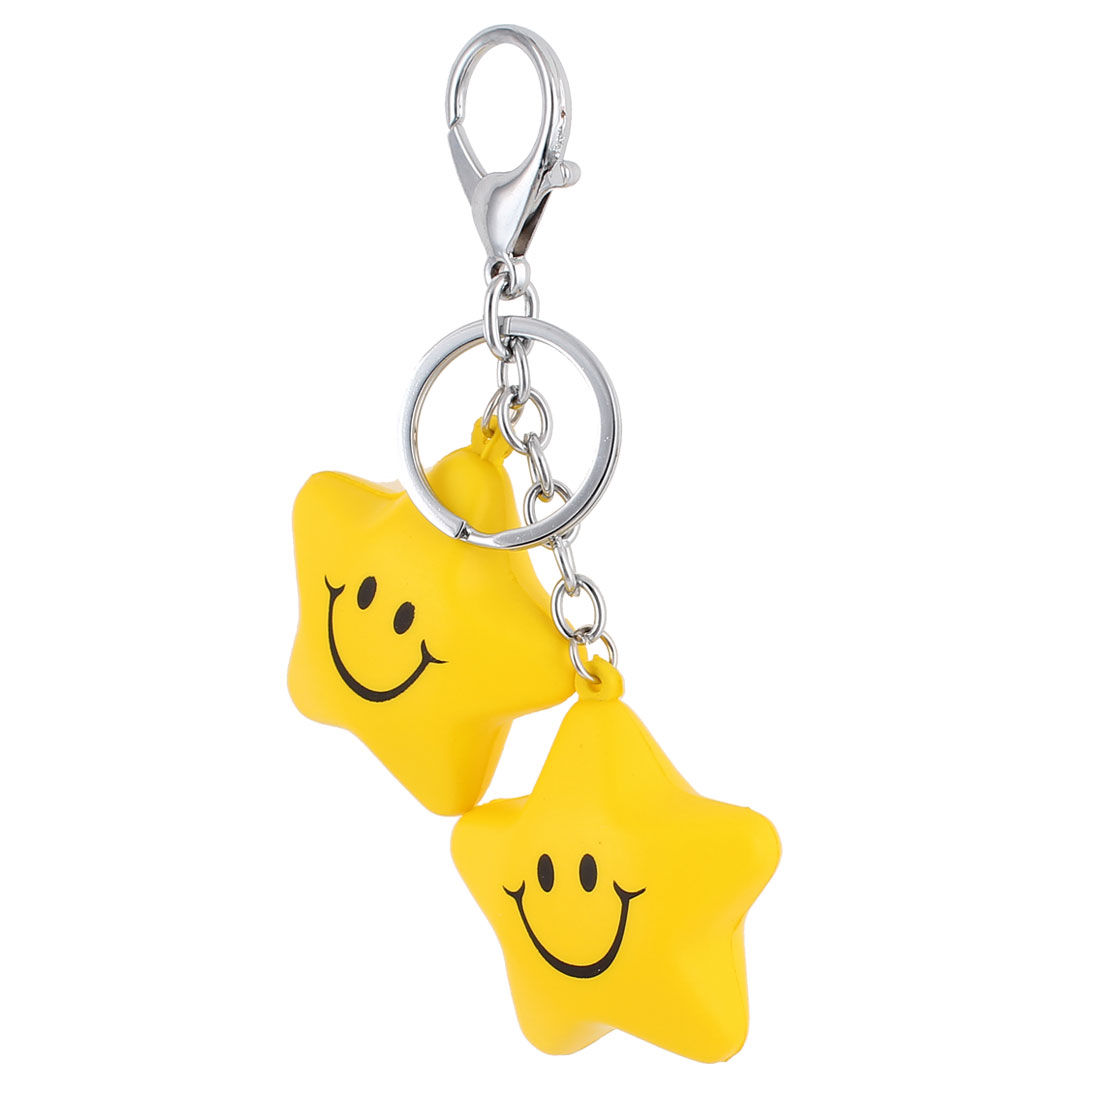 Rubber Star Shaped Pendant Swivel Lobster Clasp Keychain Keyring Keyfob Yellow